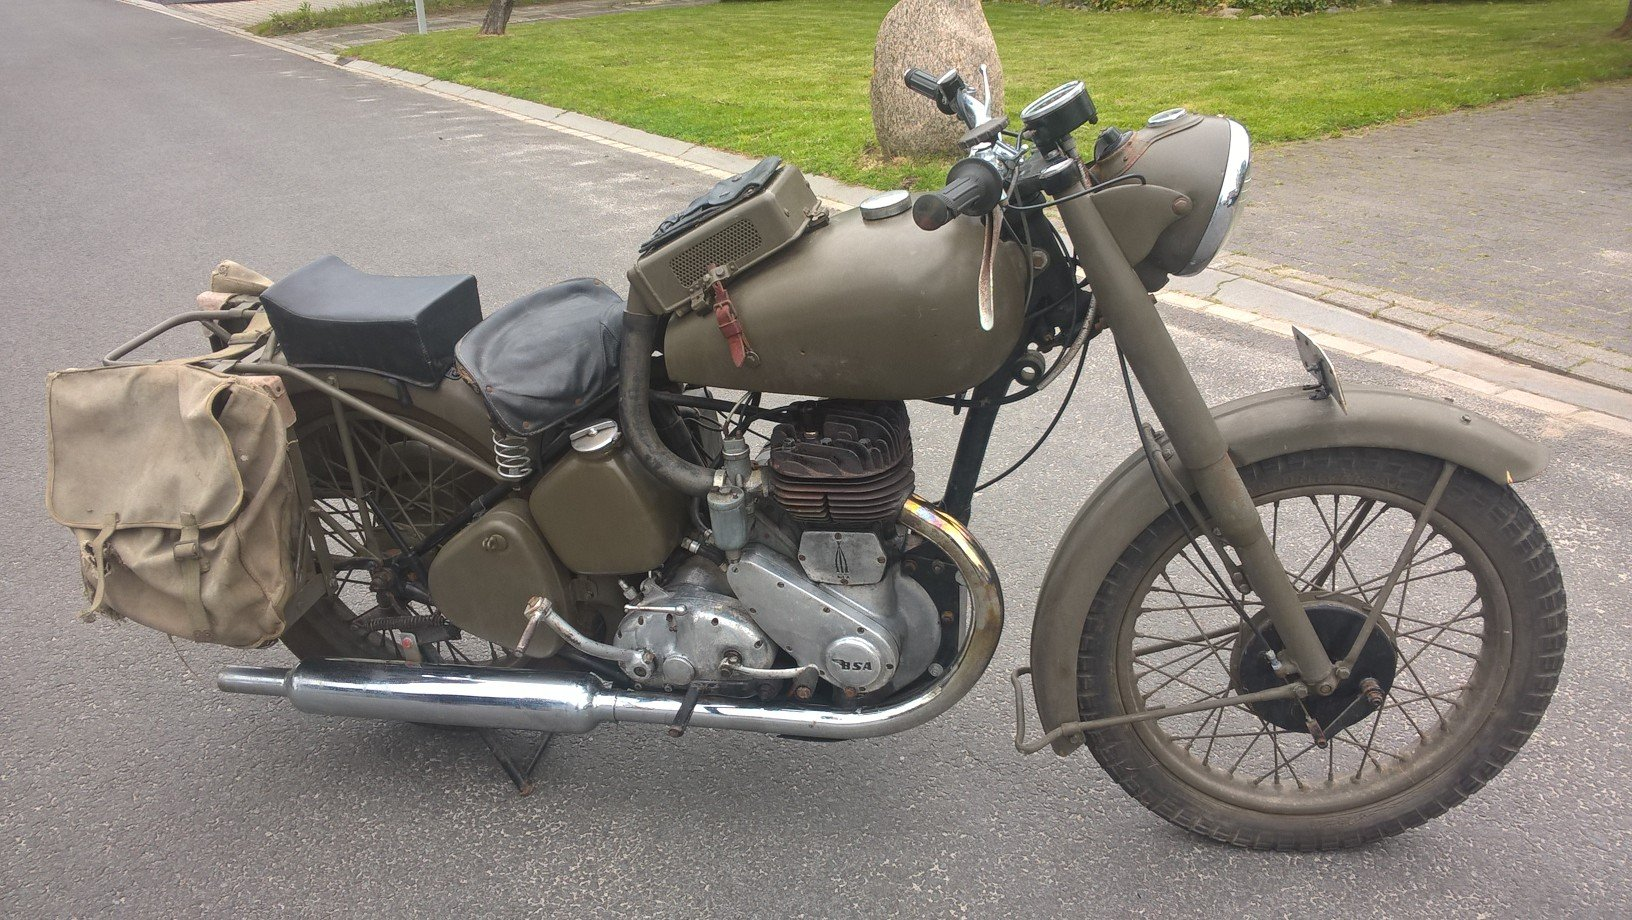 1950 Bsa model m21 swedish army For Sale (picture 1 of 6)